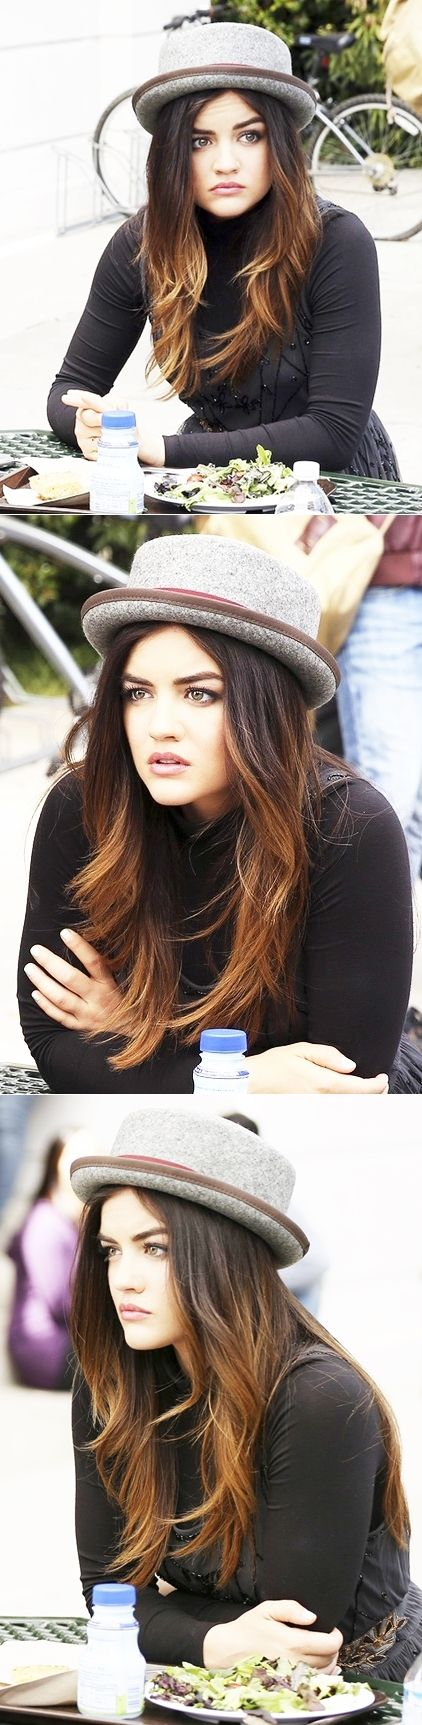 Lucy hale (Aria)